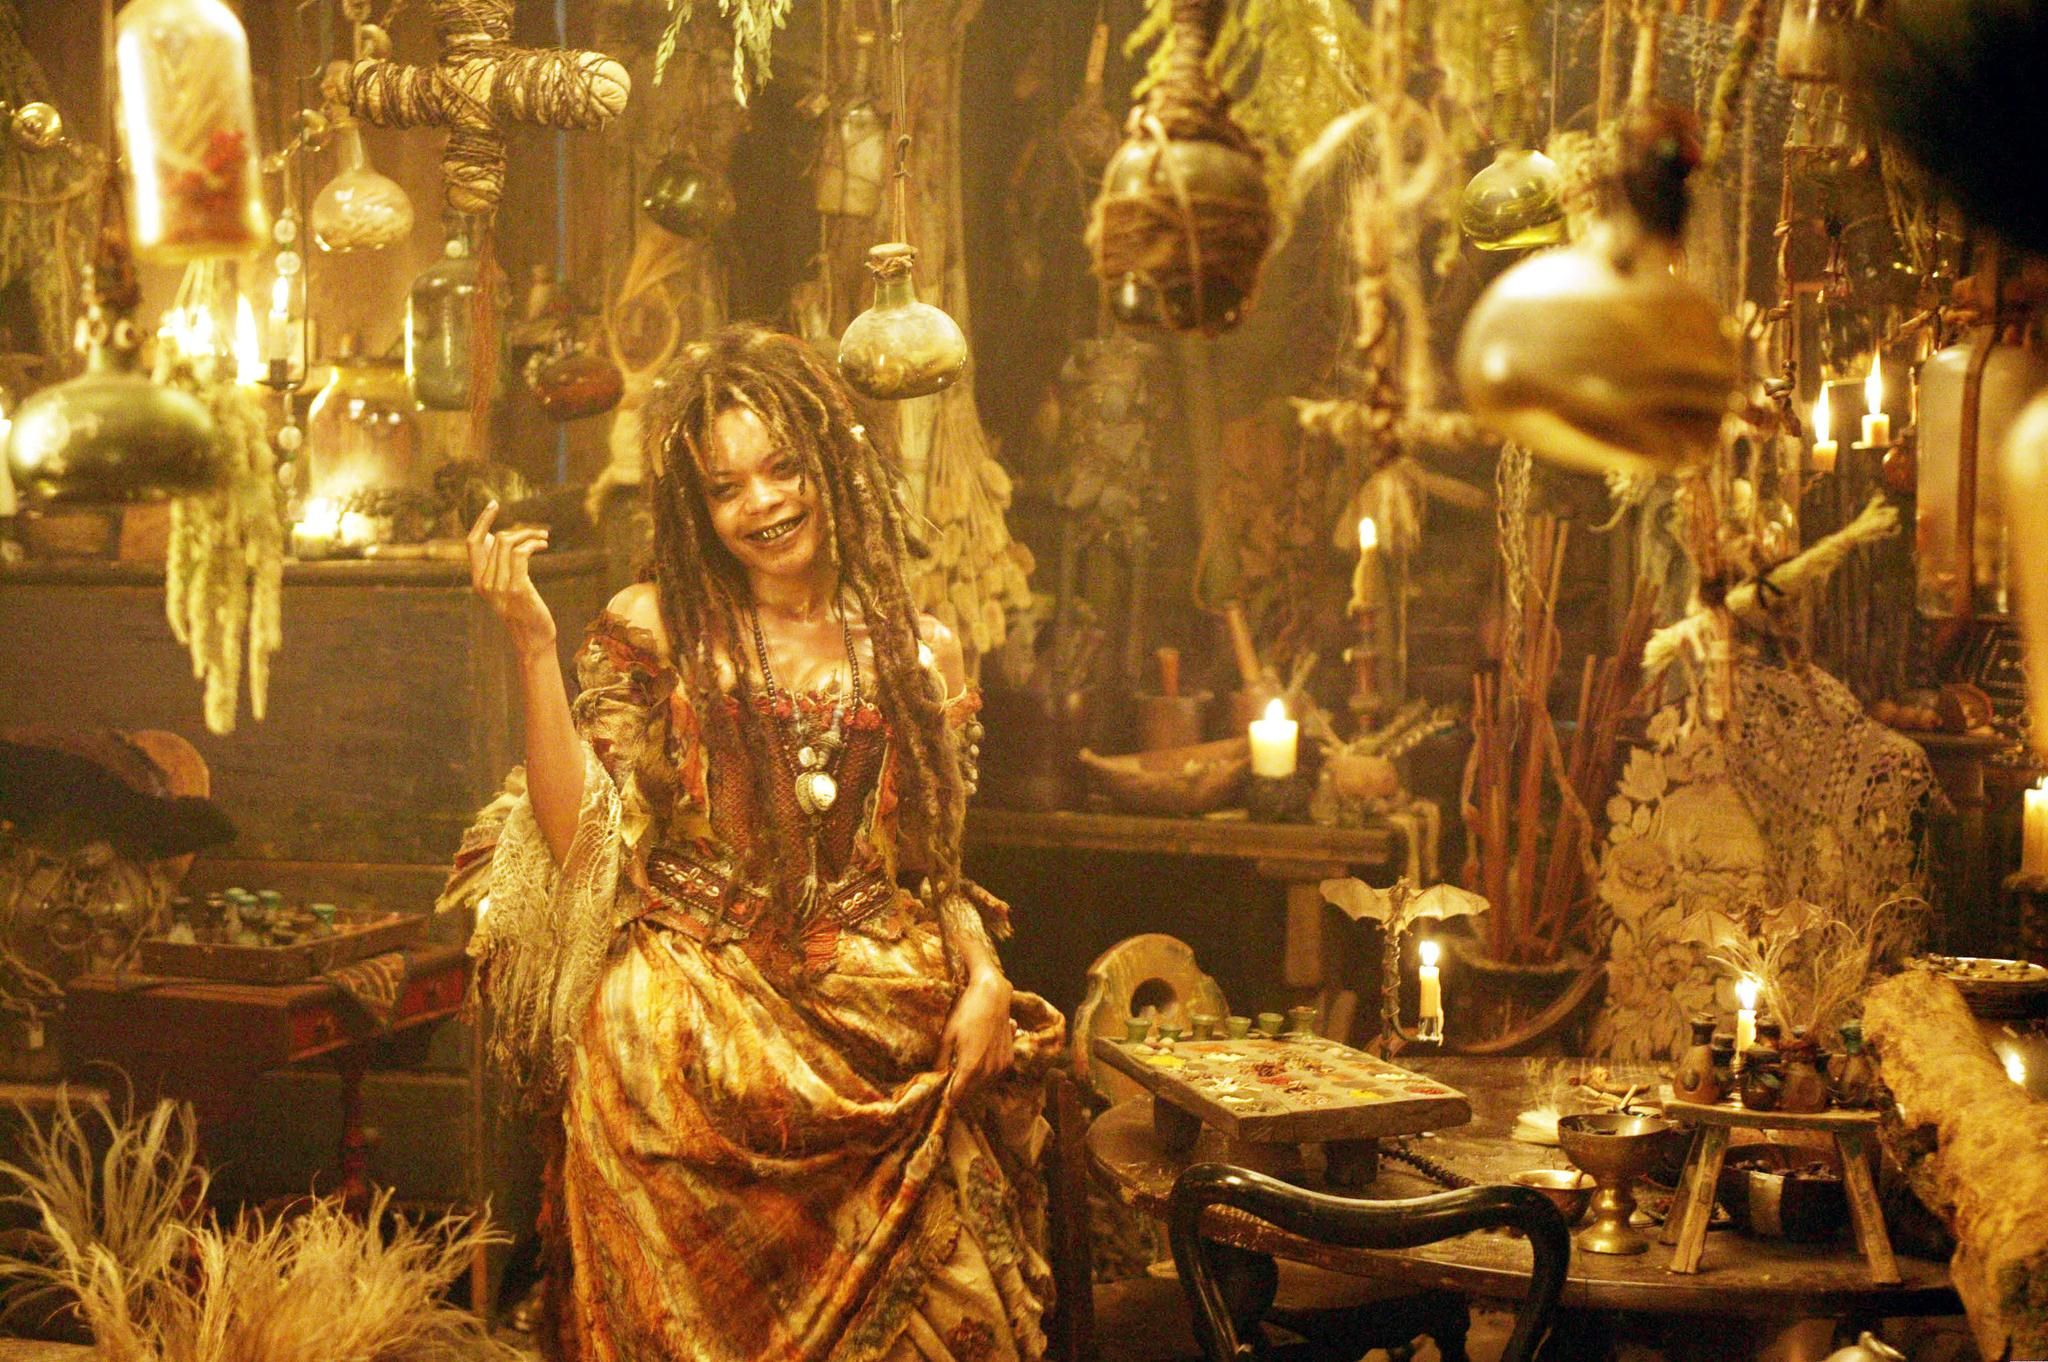 Still of Naomie Harris in Pirates of the Caribbean: Dead Man's Chest (2006) http://www.movpins.com/dHQwMzgzNTc0/pirates-of-the-caribbean:-dead-man/still-1475906816